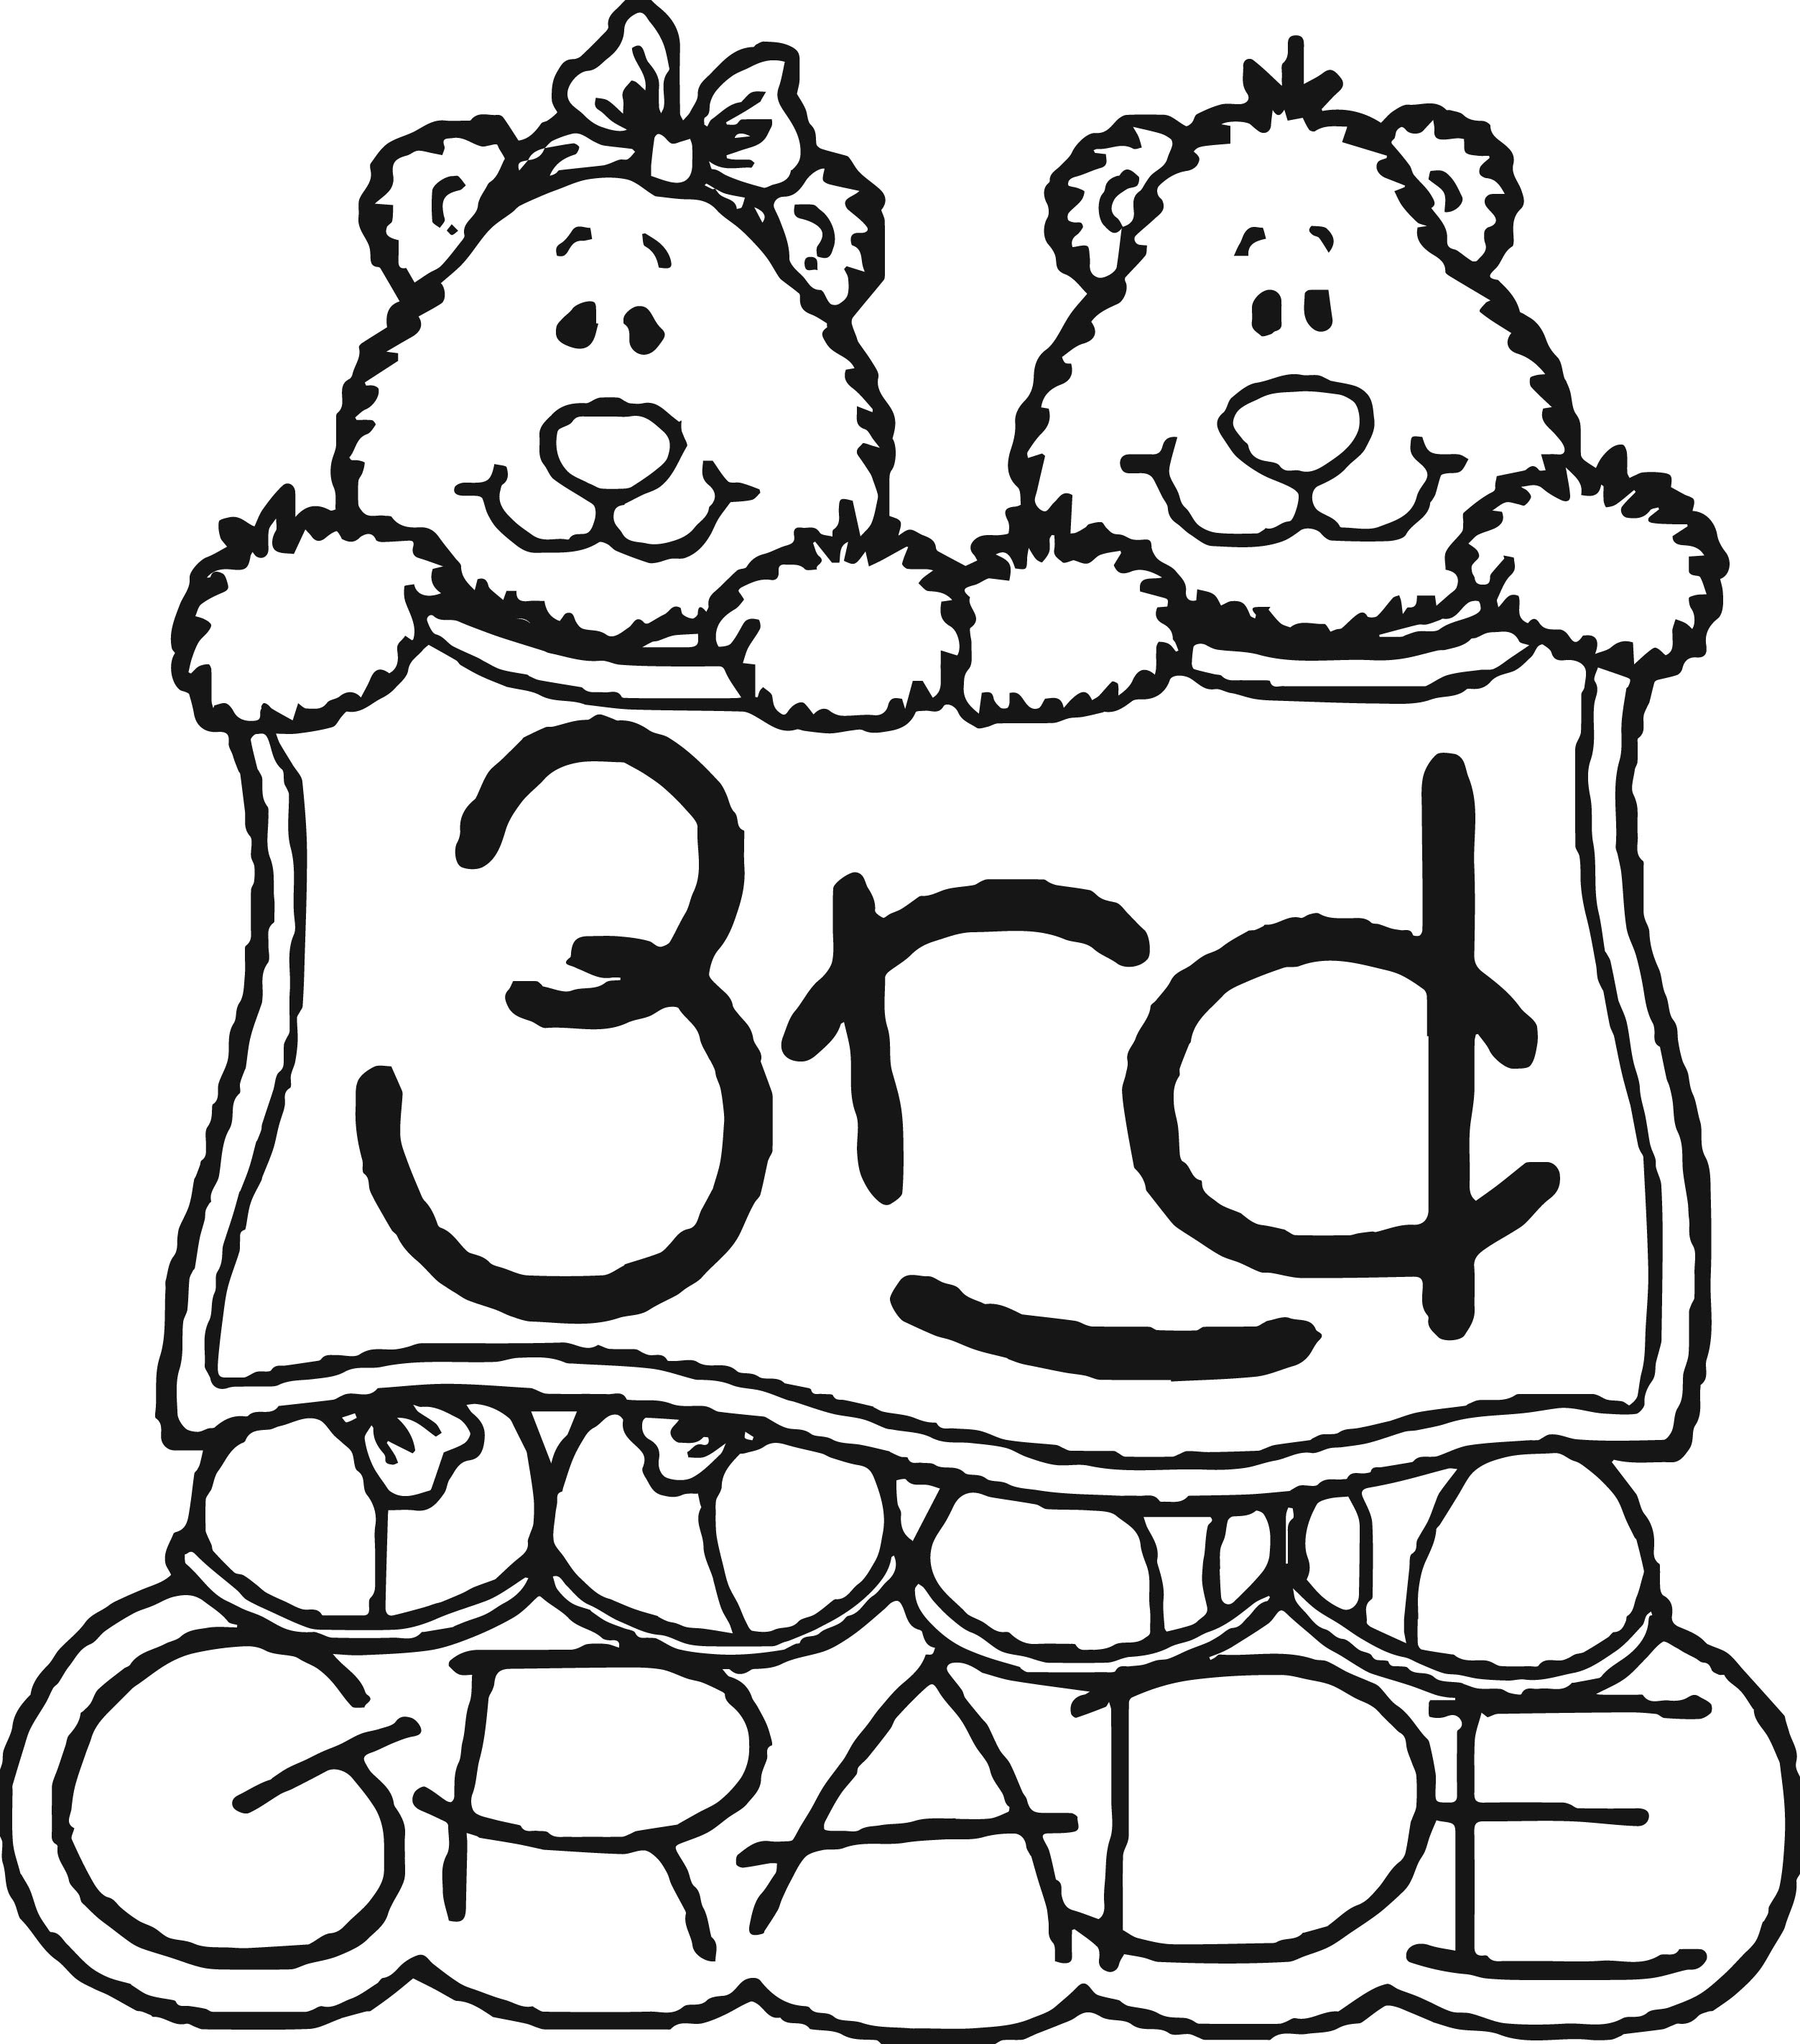 Coloring Pages For 3rd Graders